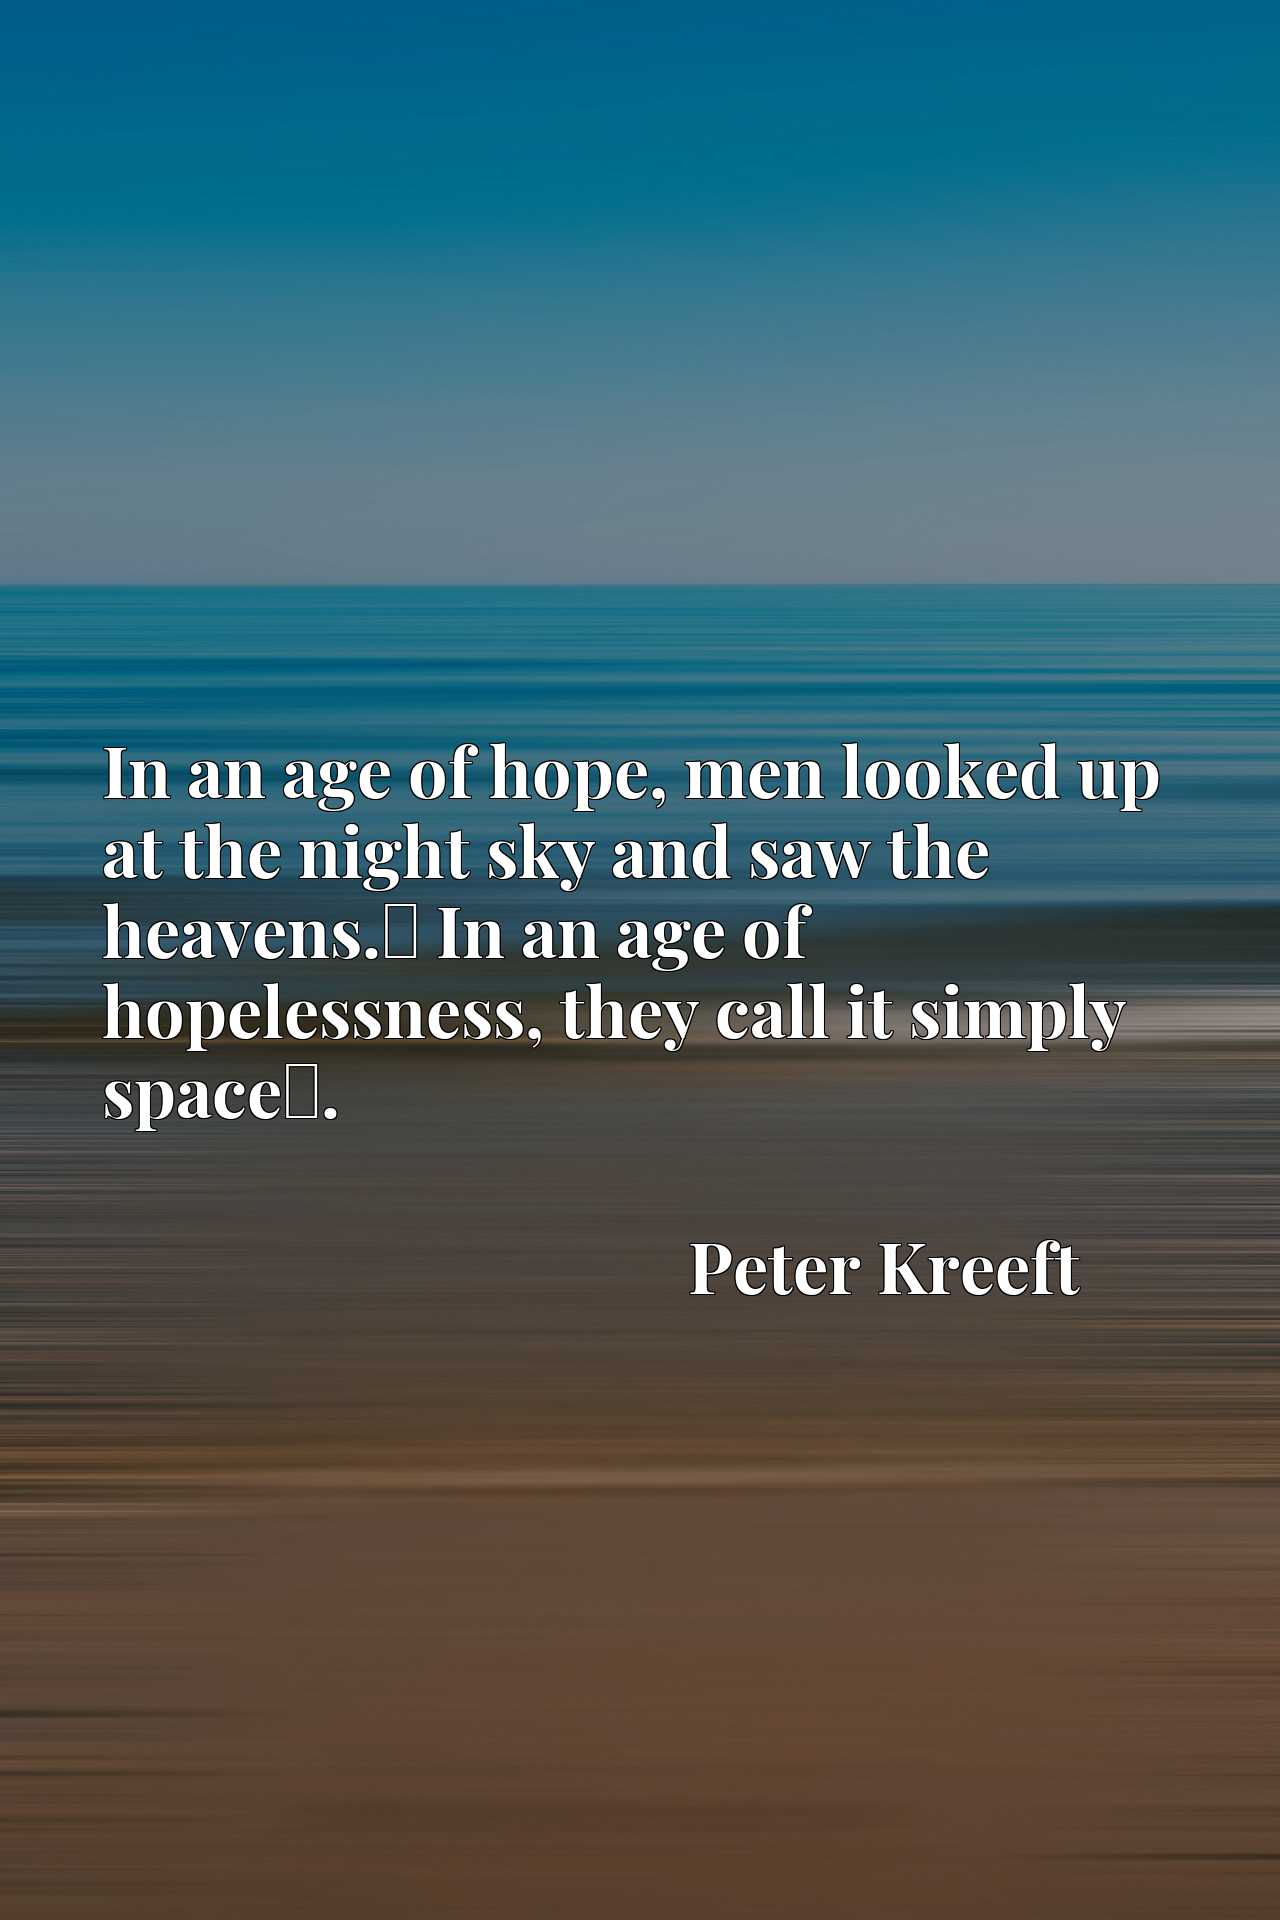 In an age of hope, men looked up at the night sky and saw the heavens.x9d In an age of hopelessness, they call it simply spacex9d.